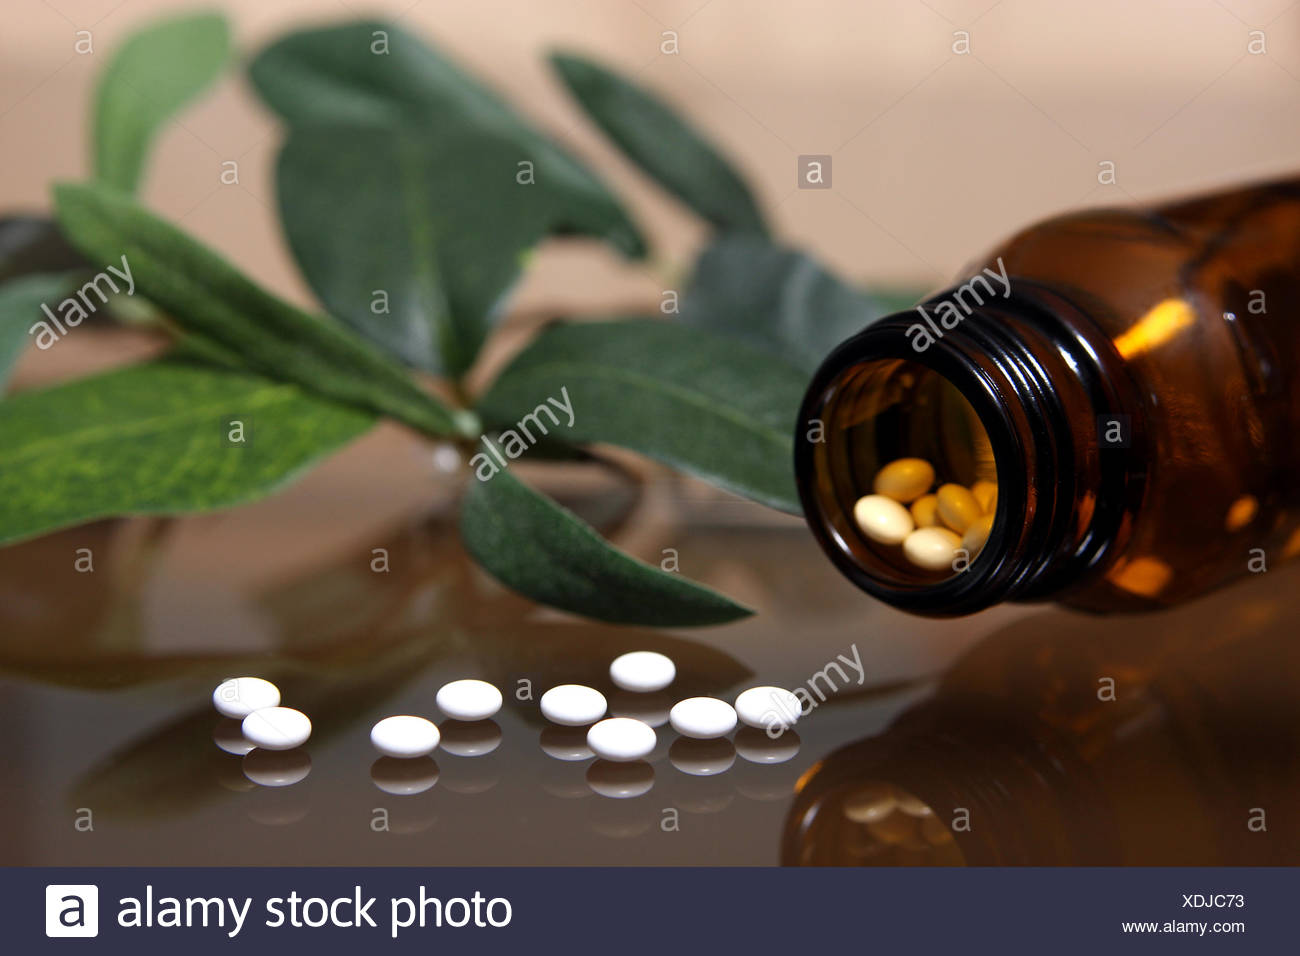 alternative medicine - Stock Image